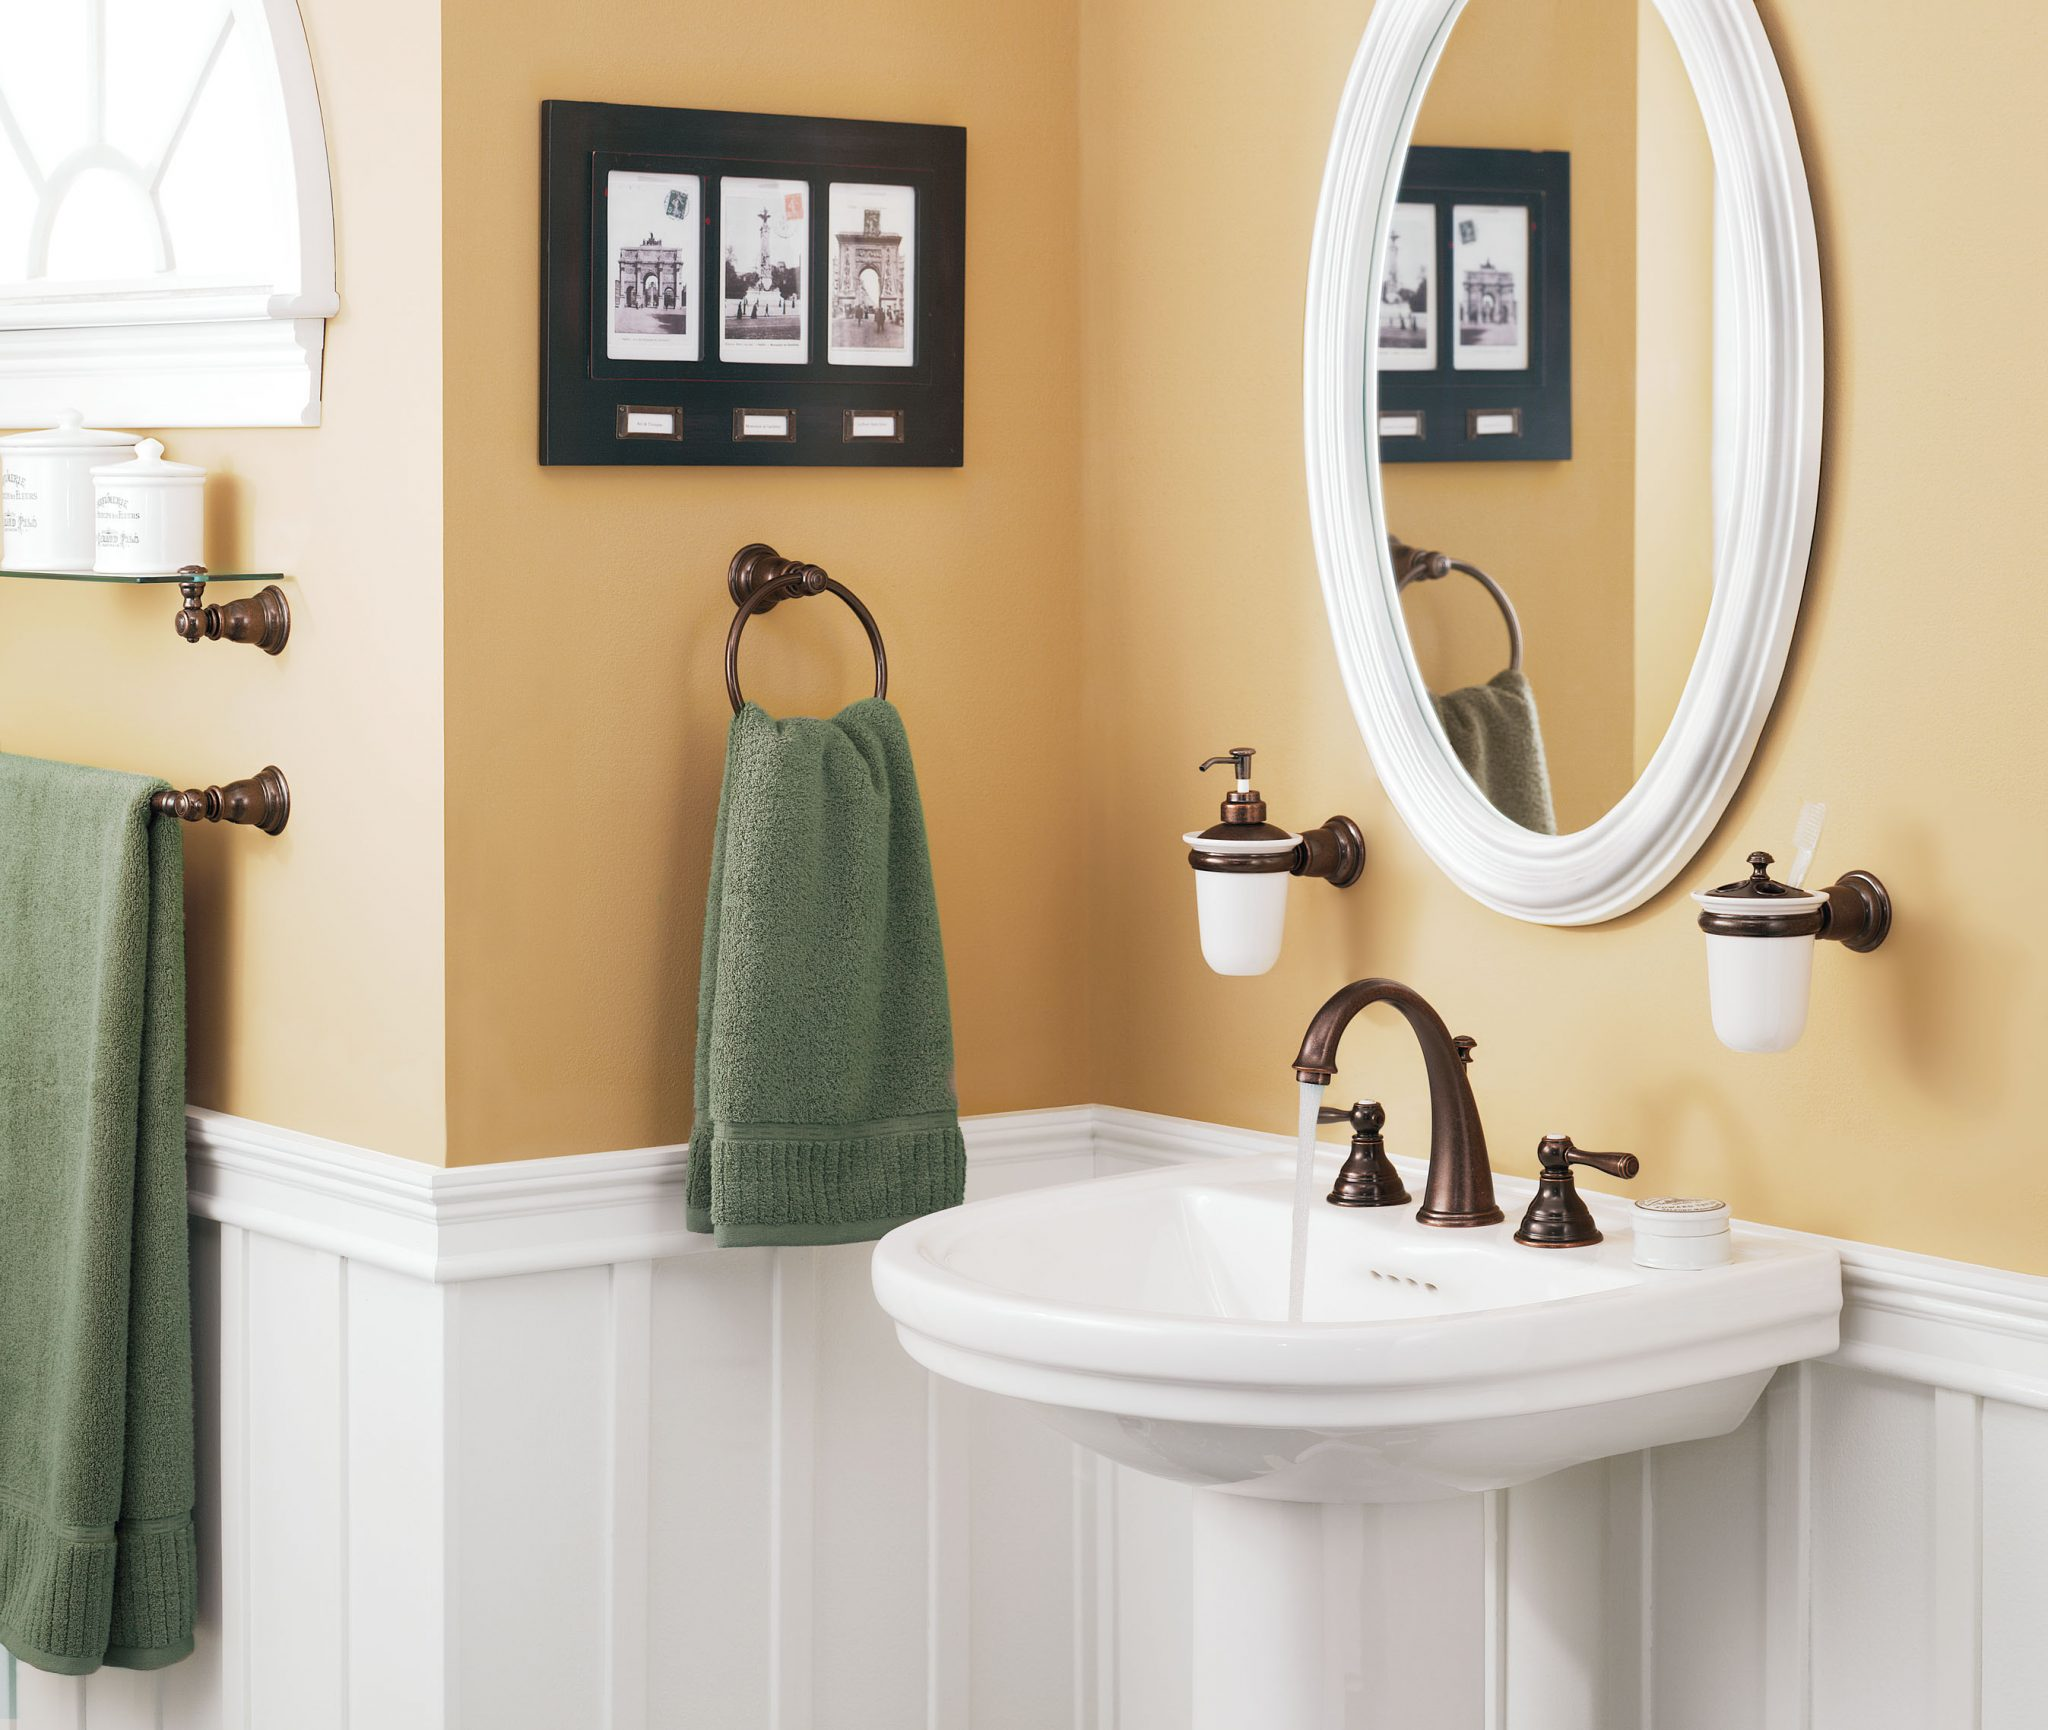 Tips For Creating Luxury Bathrooms With Acrylic Liners - Acrylic bathroom remodeling